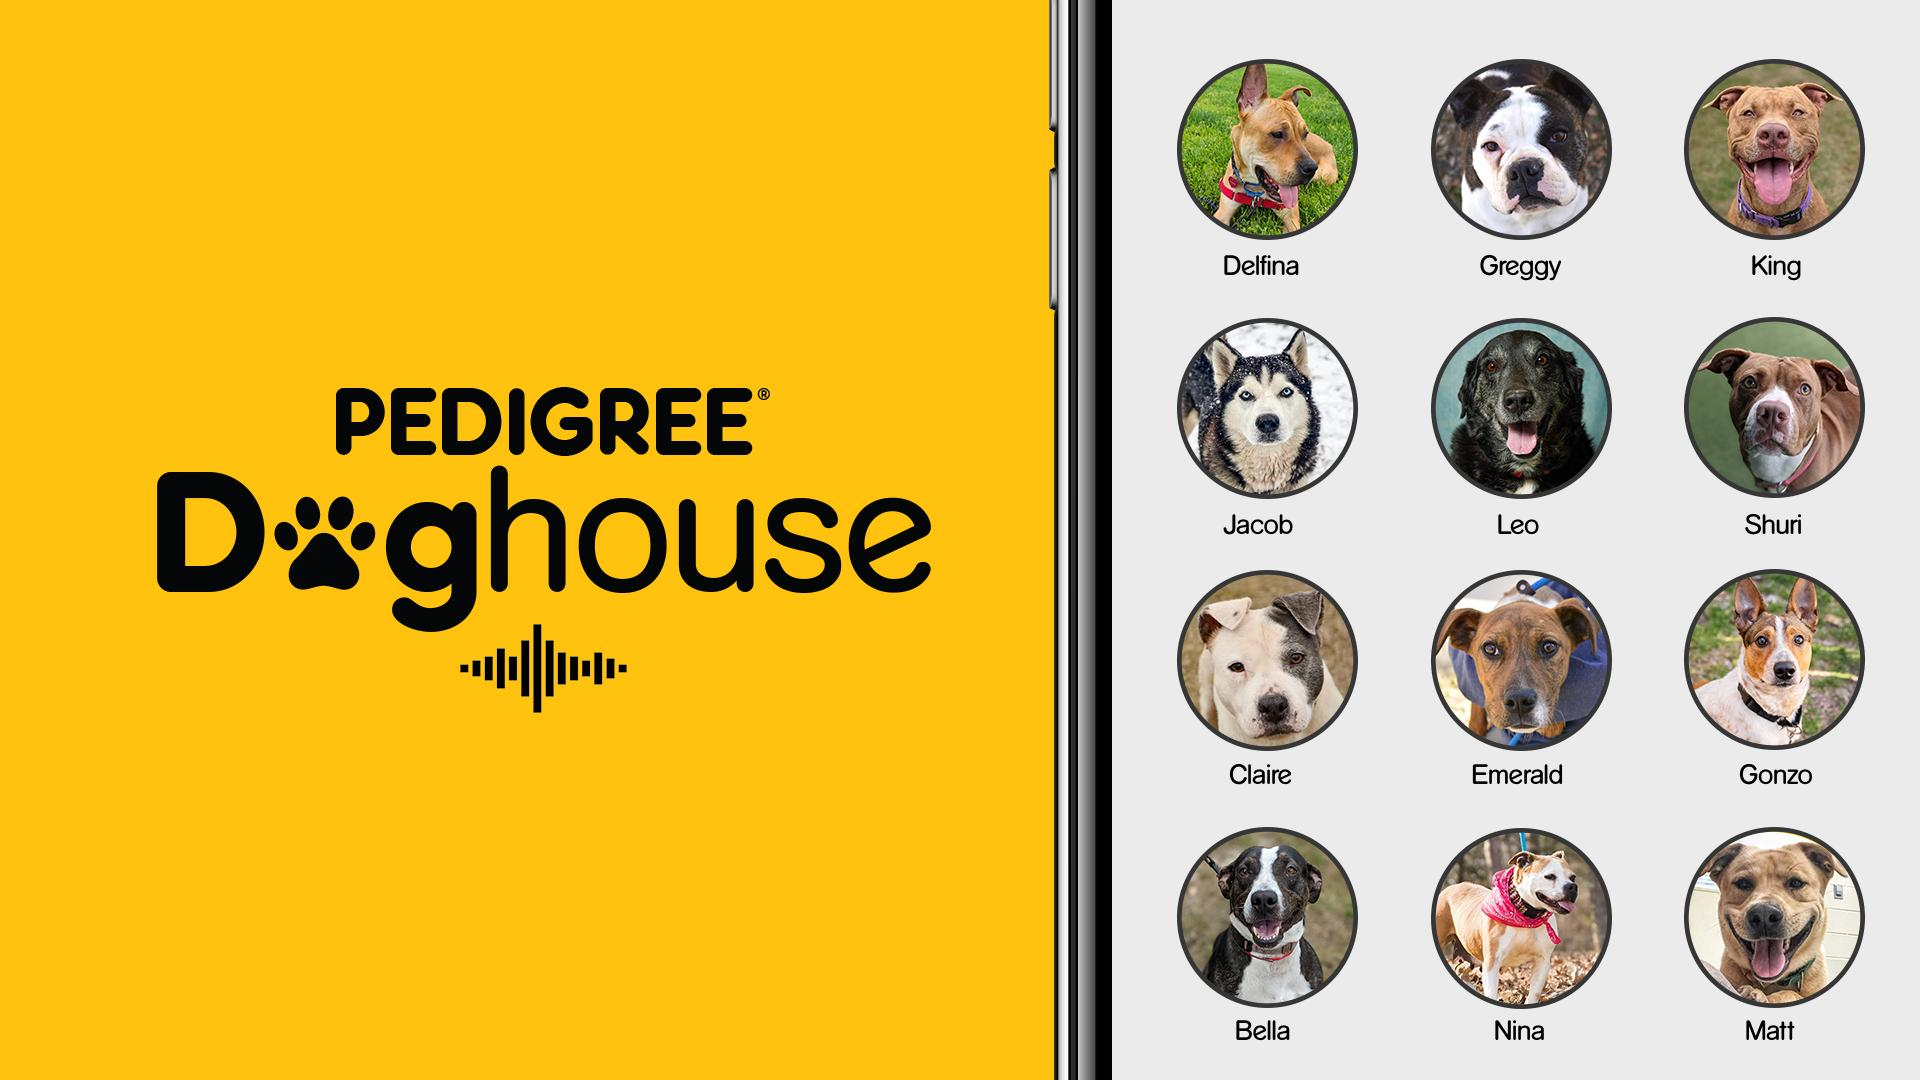 Pedigree doghouse rooms on the Clubhouse app